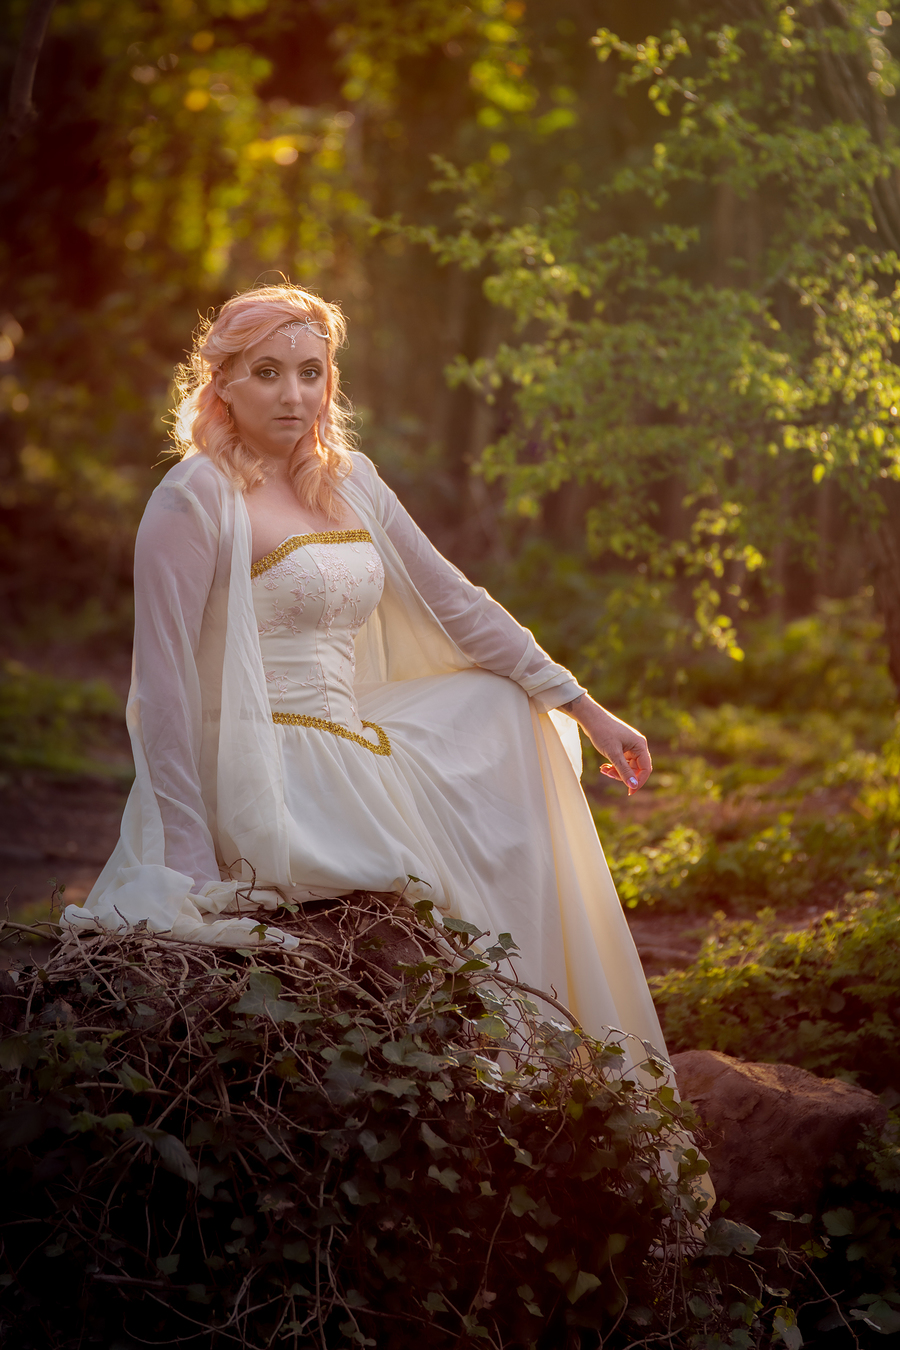 Lady of the woods of Lothlórien / Photography by Dave Lynes, Model PJ Elise, Makeup by PJ Elise, Post processing by Dave Lynes / Uploaded 27th April 2021 @ 06:29 PM